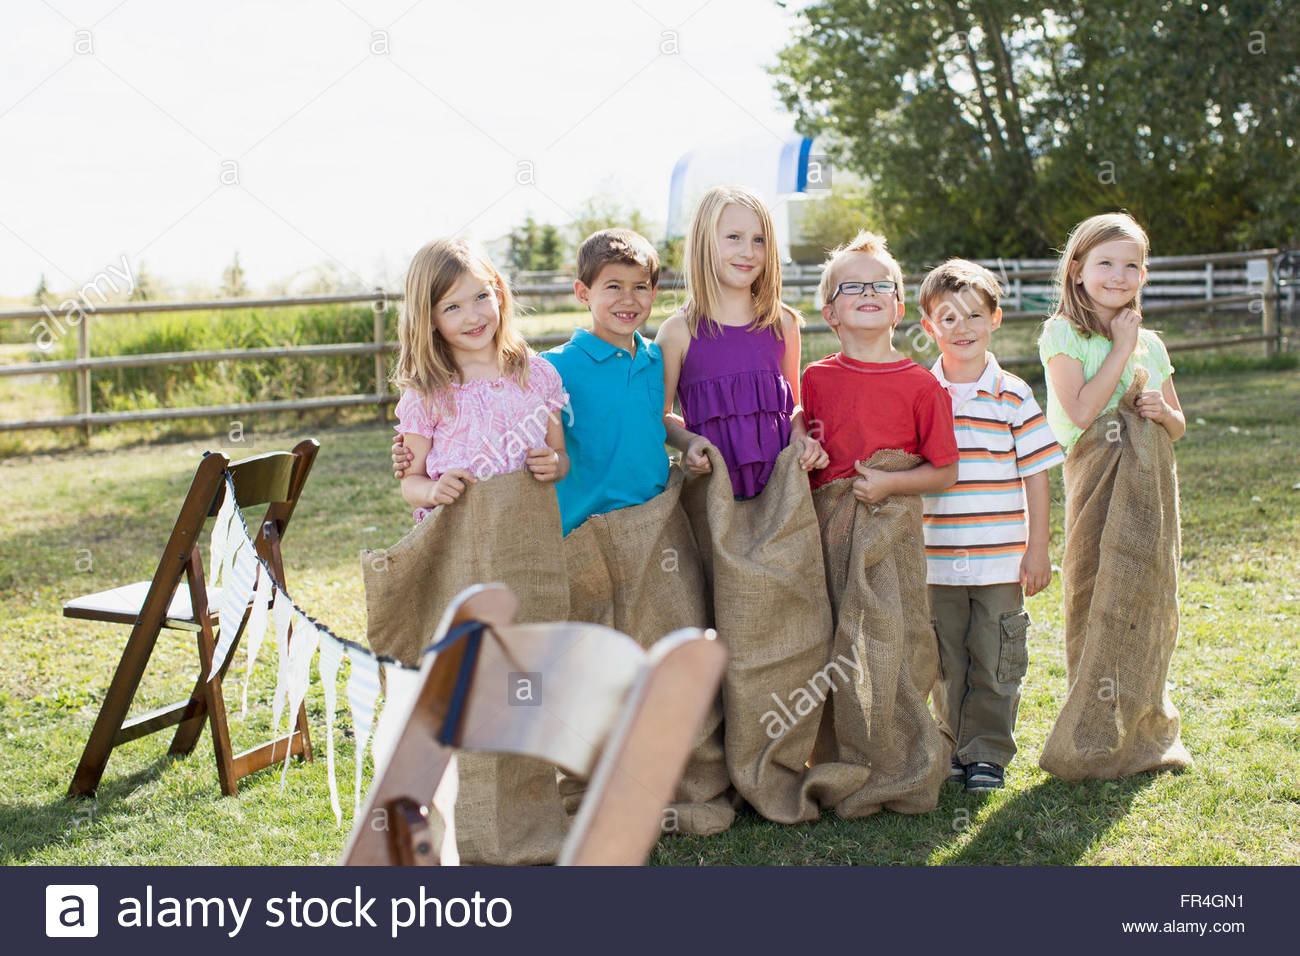 Sisters and cousins lined up for potato sack race. - Stock Image